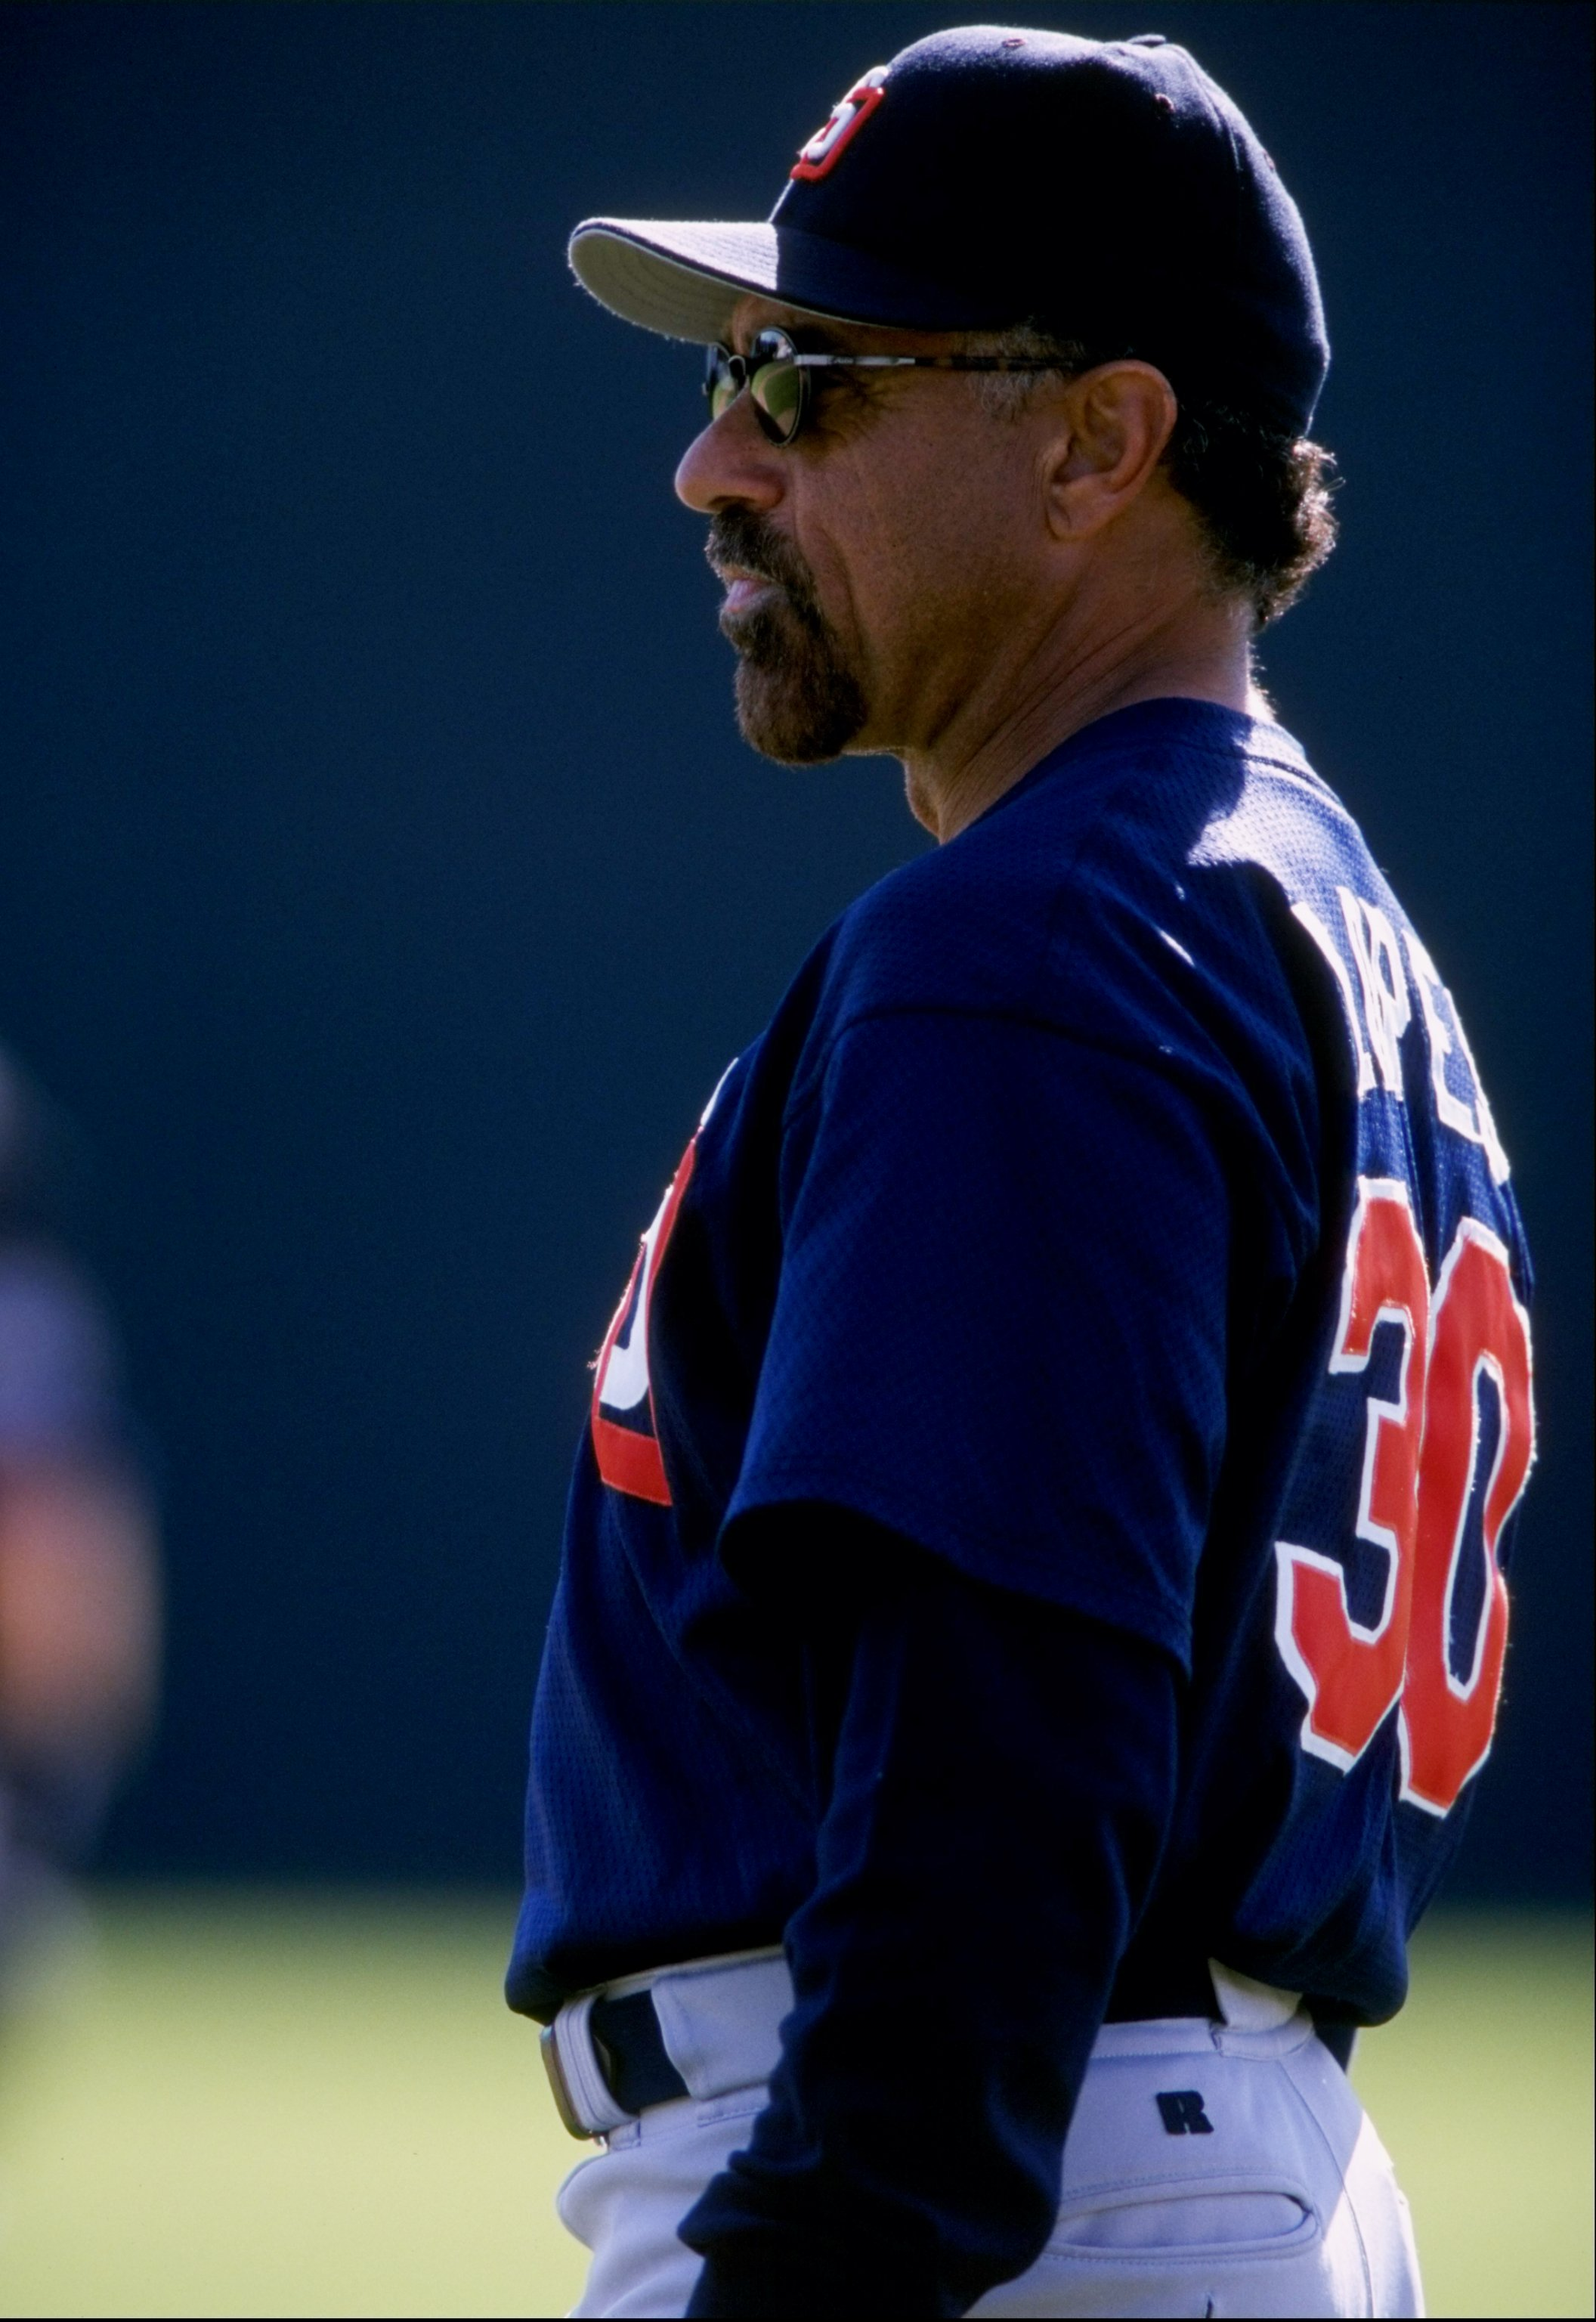 2 Mar 1998:  Davey Lopes #30 of the San Diego Padres looks on during a spring training game against the Colorado Rockies at Hi Corbett Field in Tucson, Arizona. The Padres defeated the Rockies 6-1. Mandatory Credit: Todd Warshaw  /Allsport